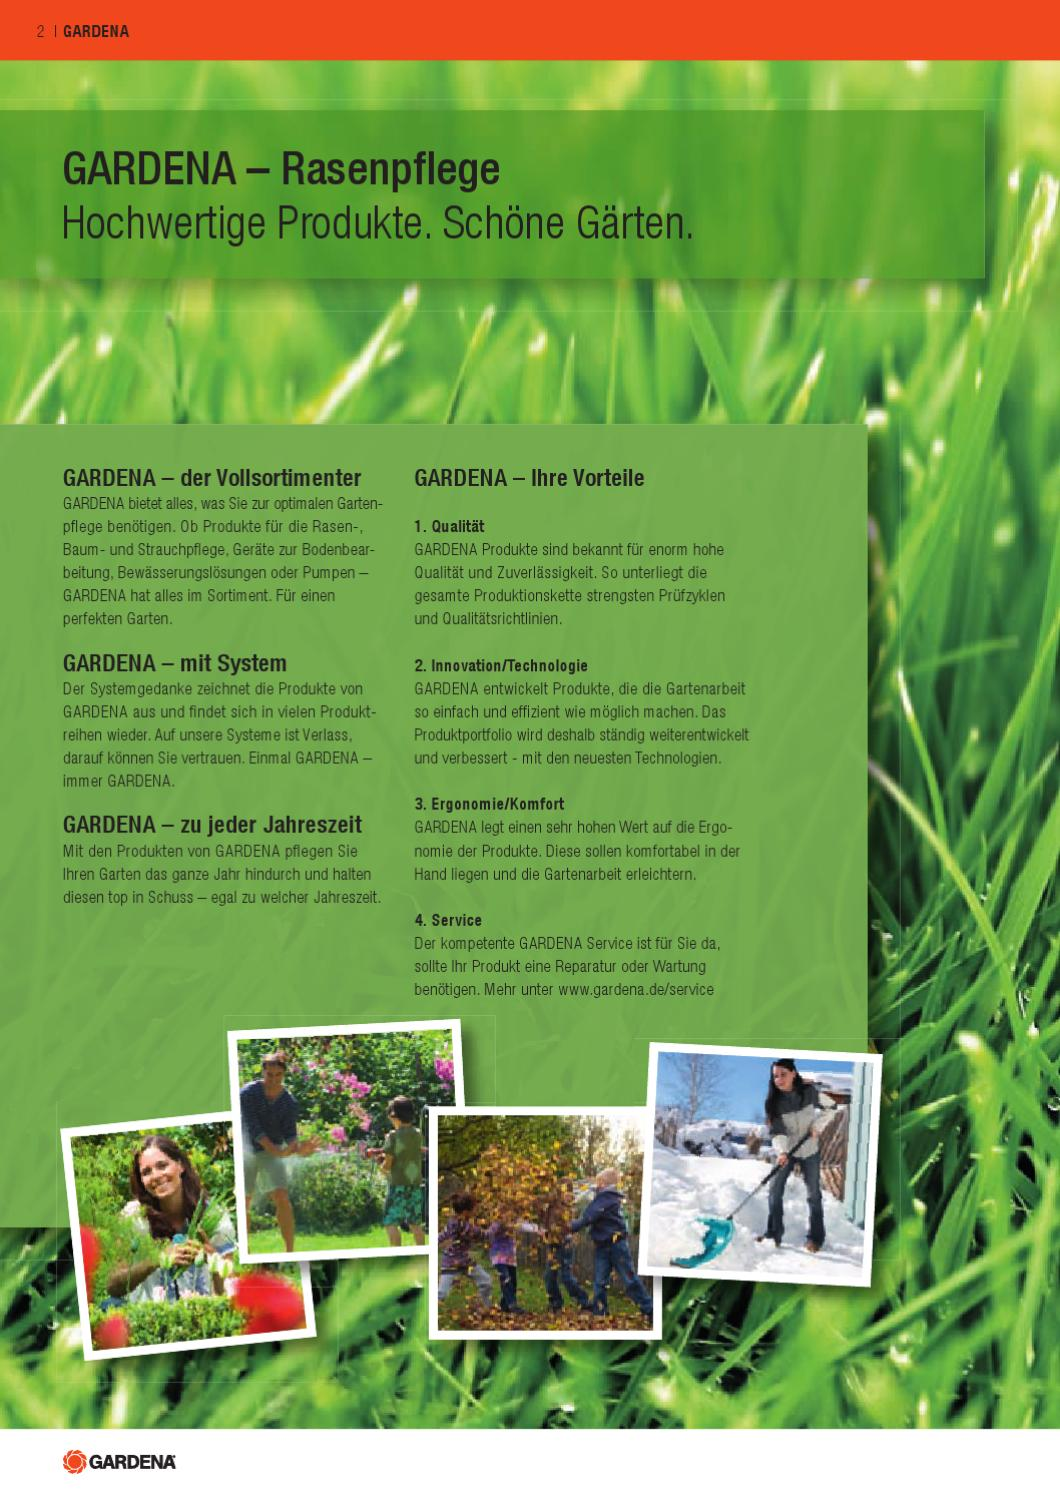 gardena lawn care 2012 - german by husqvarna ab - issuu